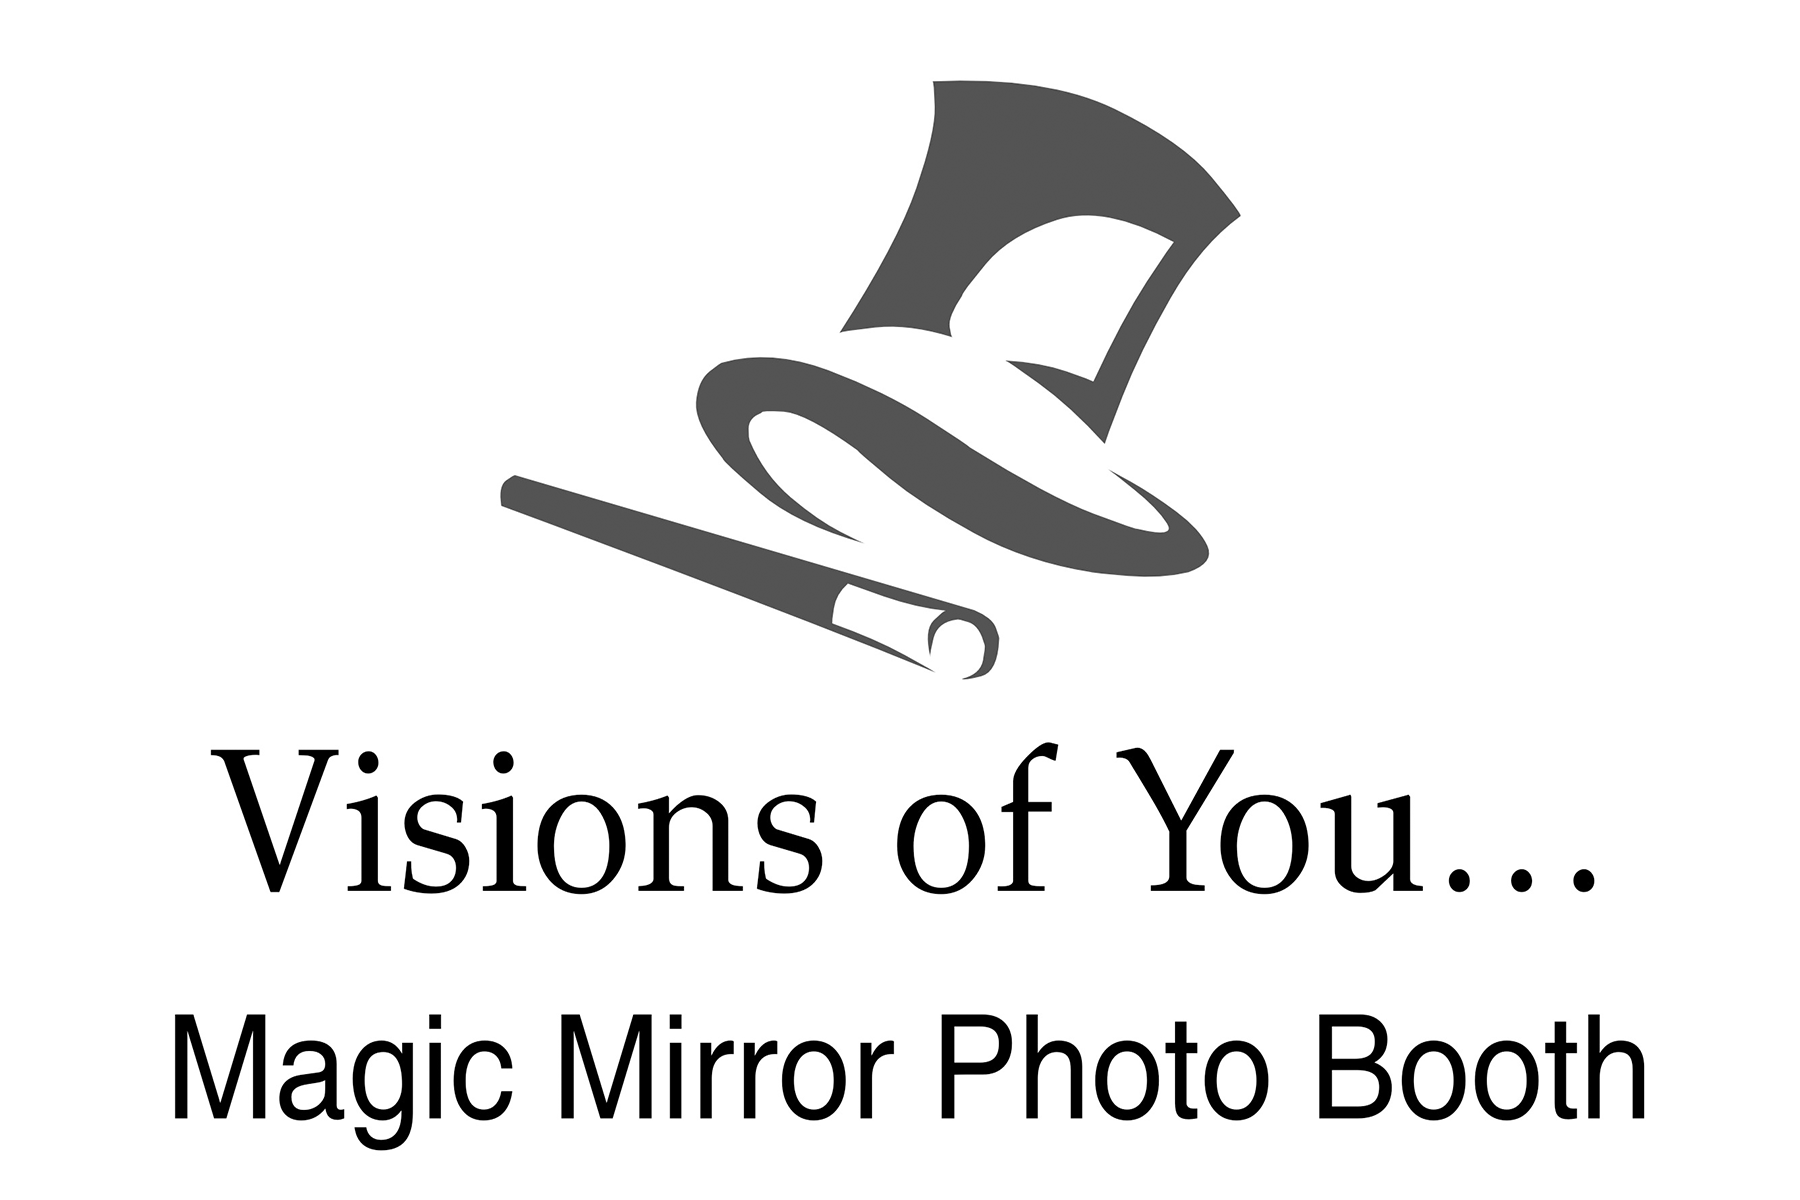 Visions of You...Magic Mirror Photo Booth Logo